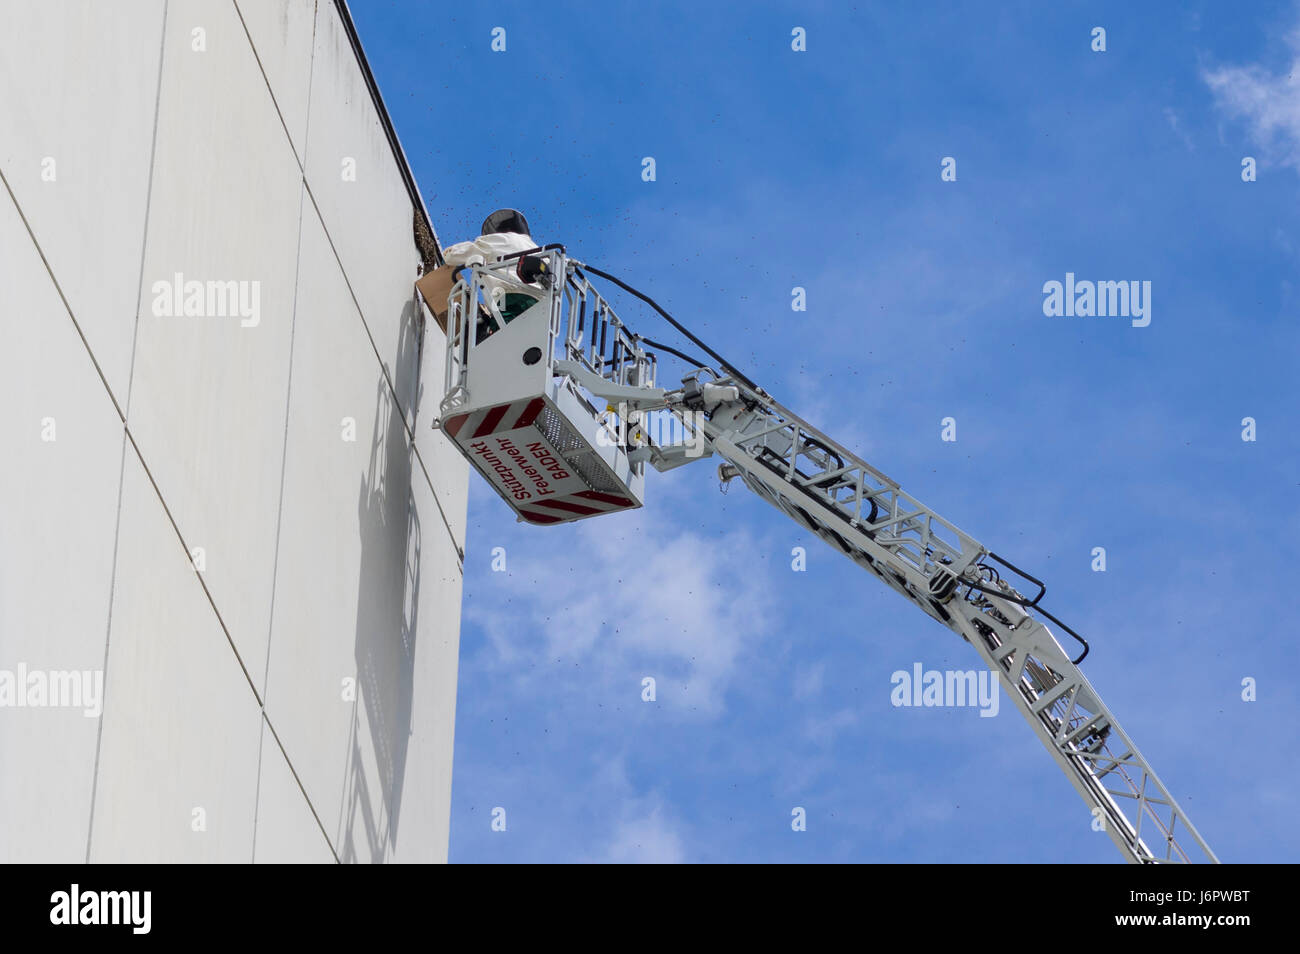 Beekeeper on an aerial platform capturing a bee swarm on a wall. Many bees flying around. - Stock Image